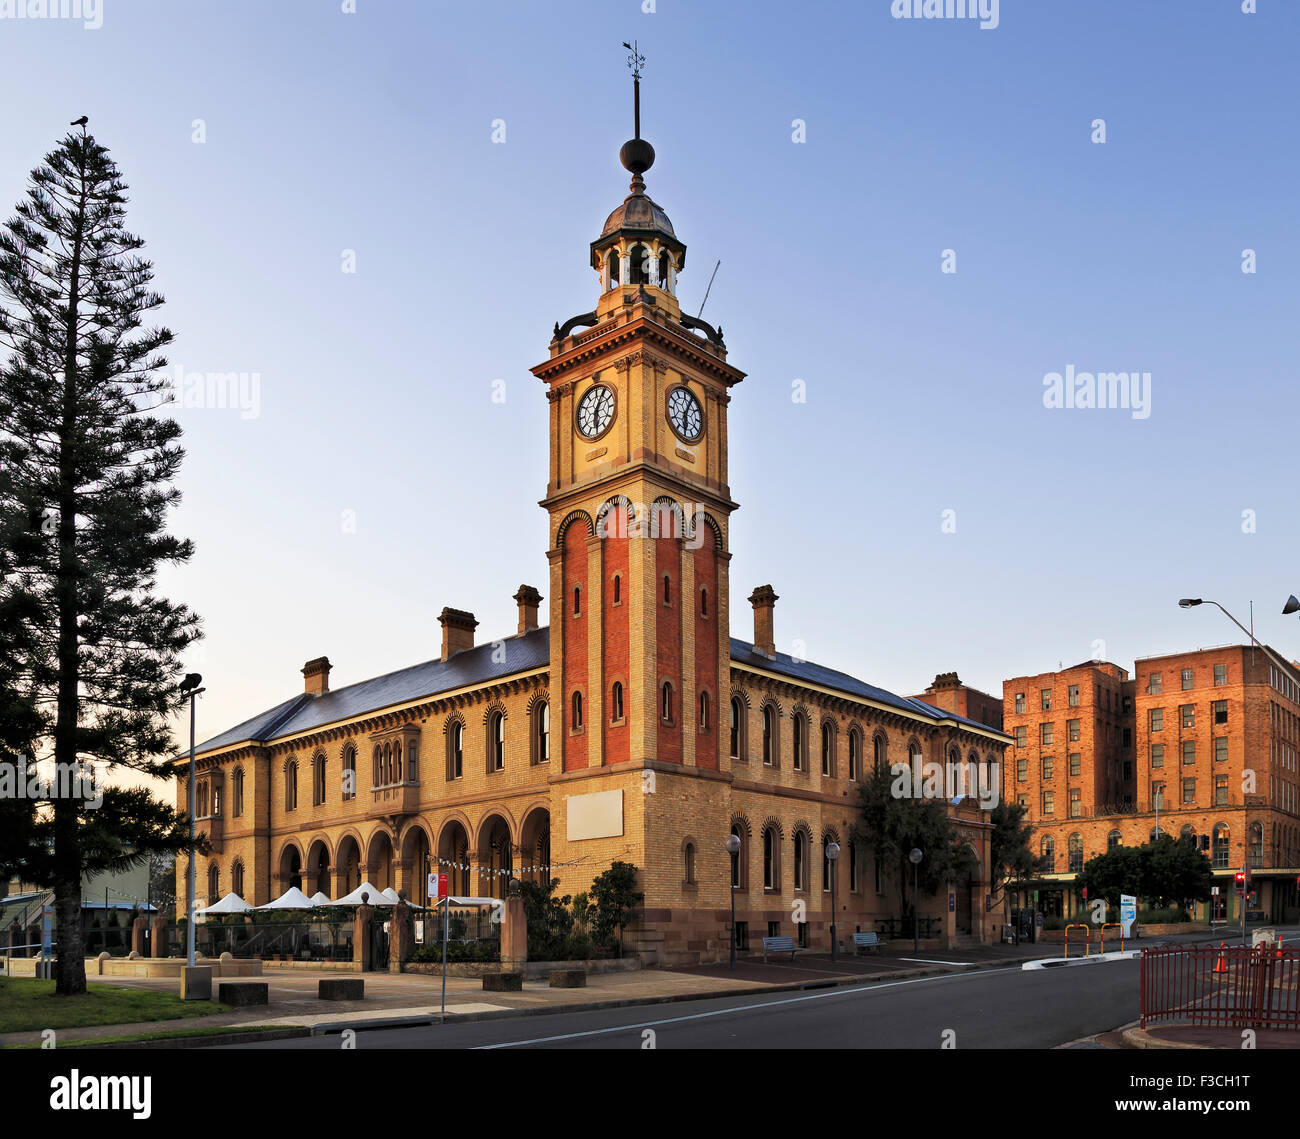 facade of historic Customs house building in Newcastle, Australia, which is a hotel in downtown - Stock Image